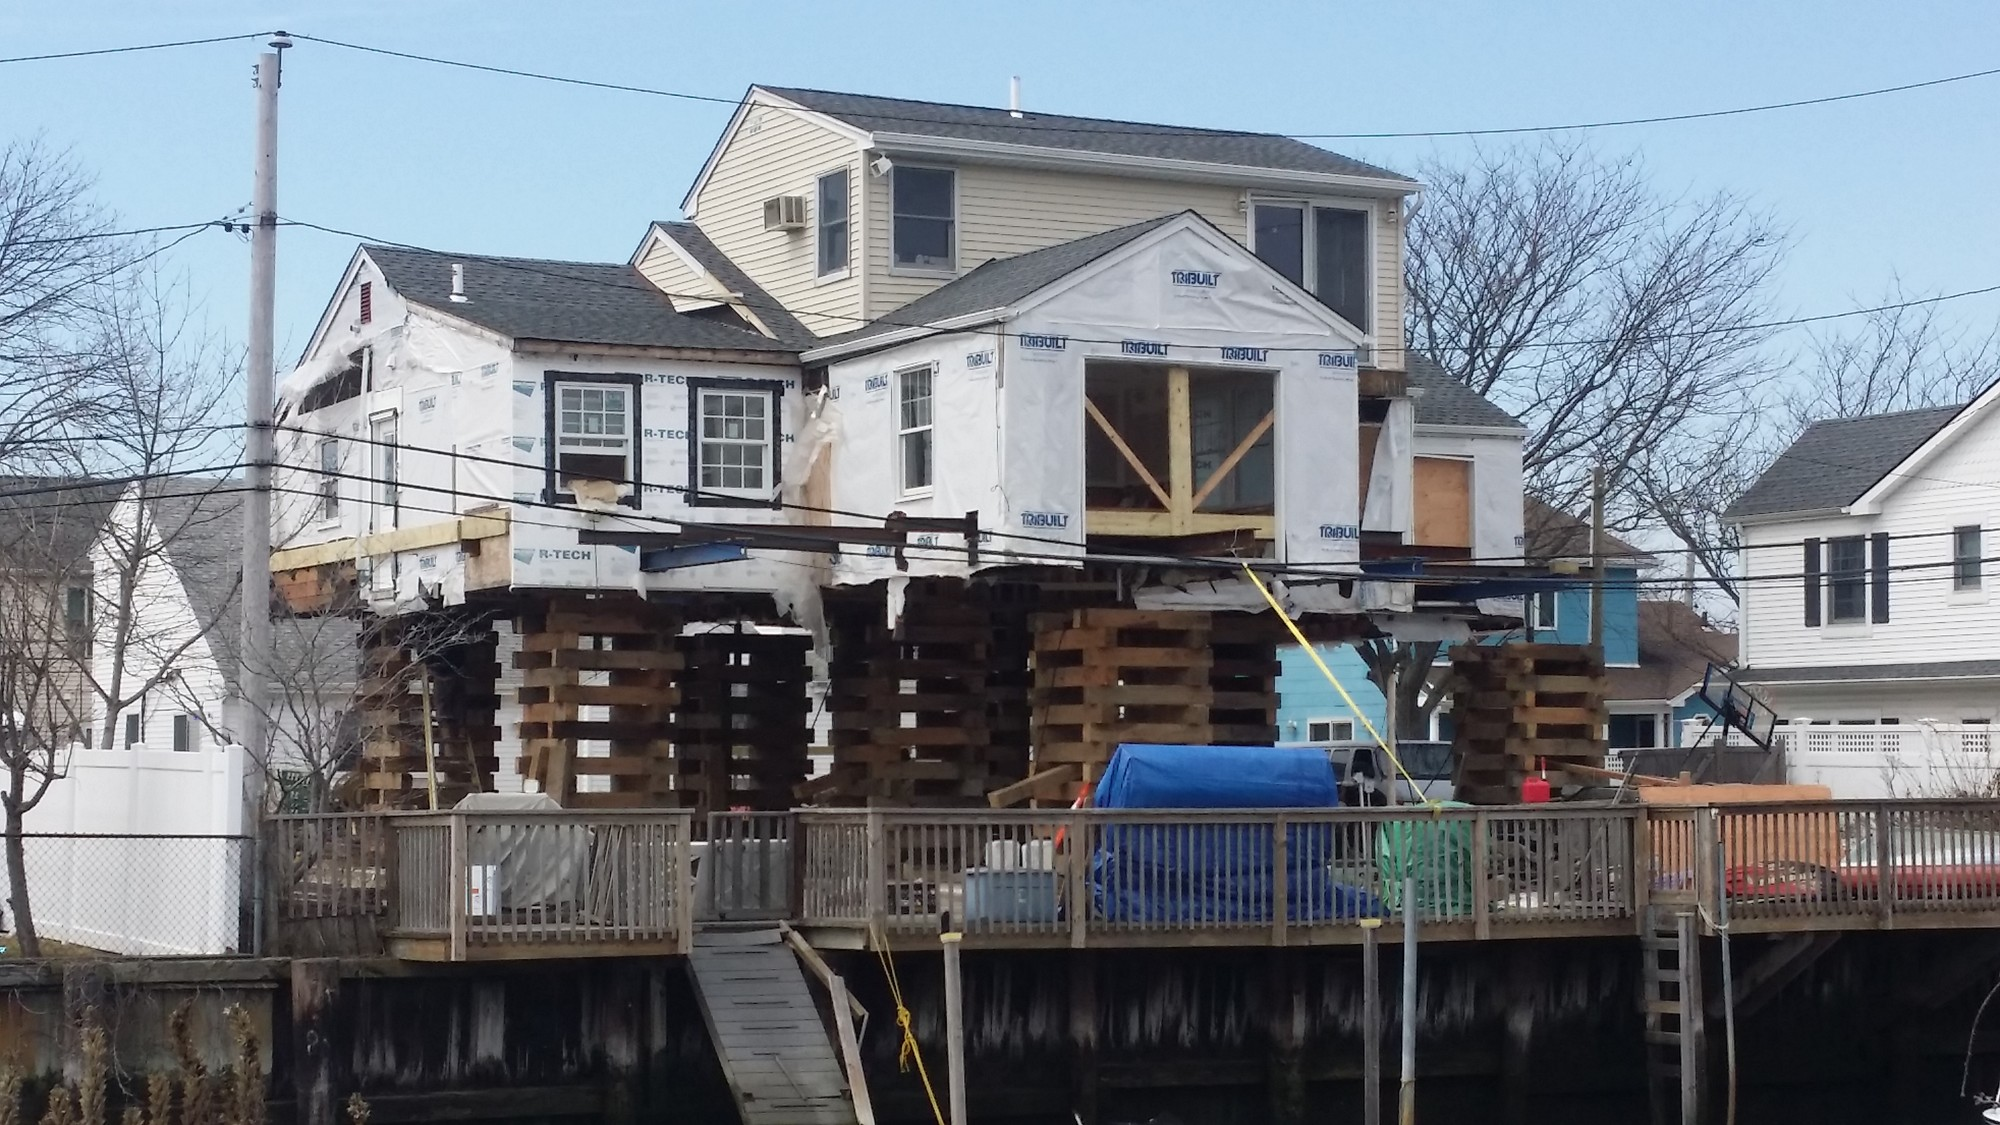 Hurricane Sandy ripped through Long Beach on Oct. 29, 2012. Now hundreds of homes in the city, such as this canal-front property, are being raised.